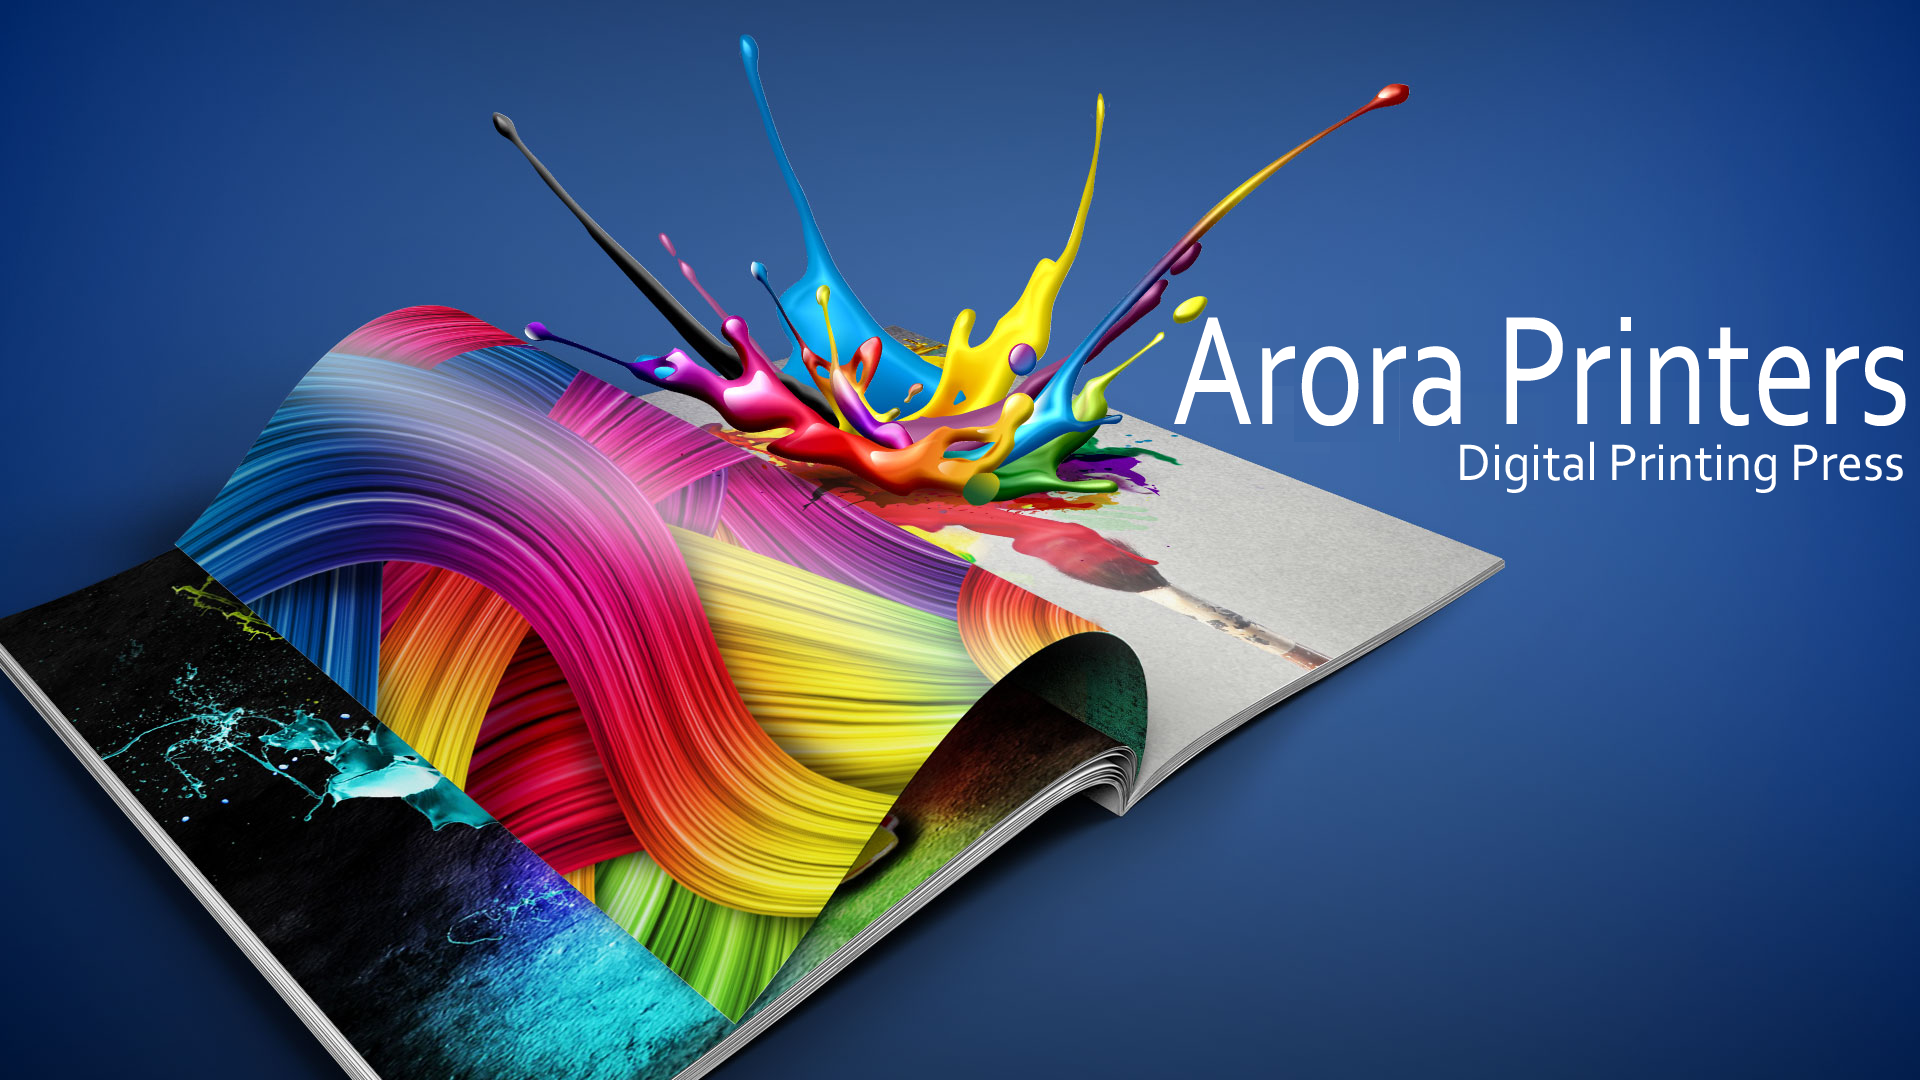 Arora Printers Is Certainly One Of The Most Reputed And